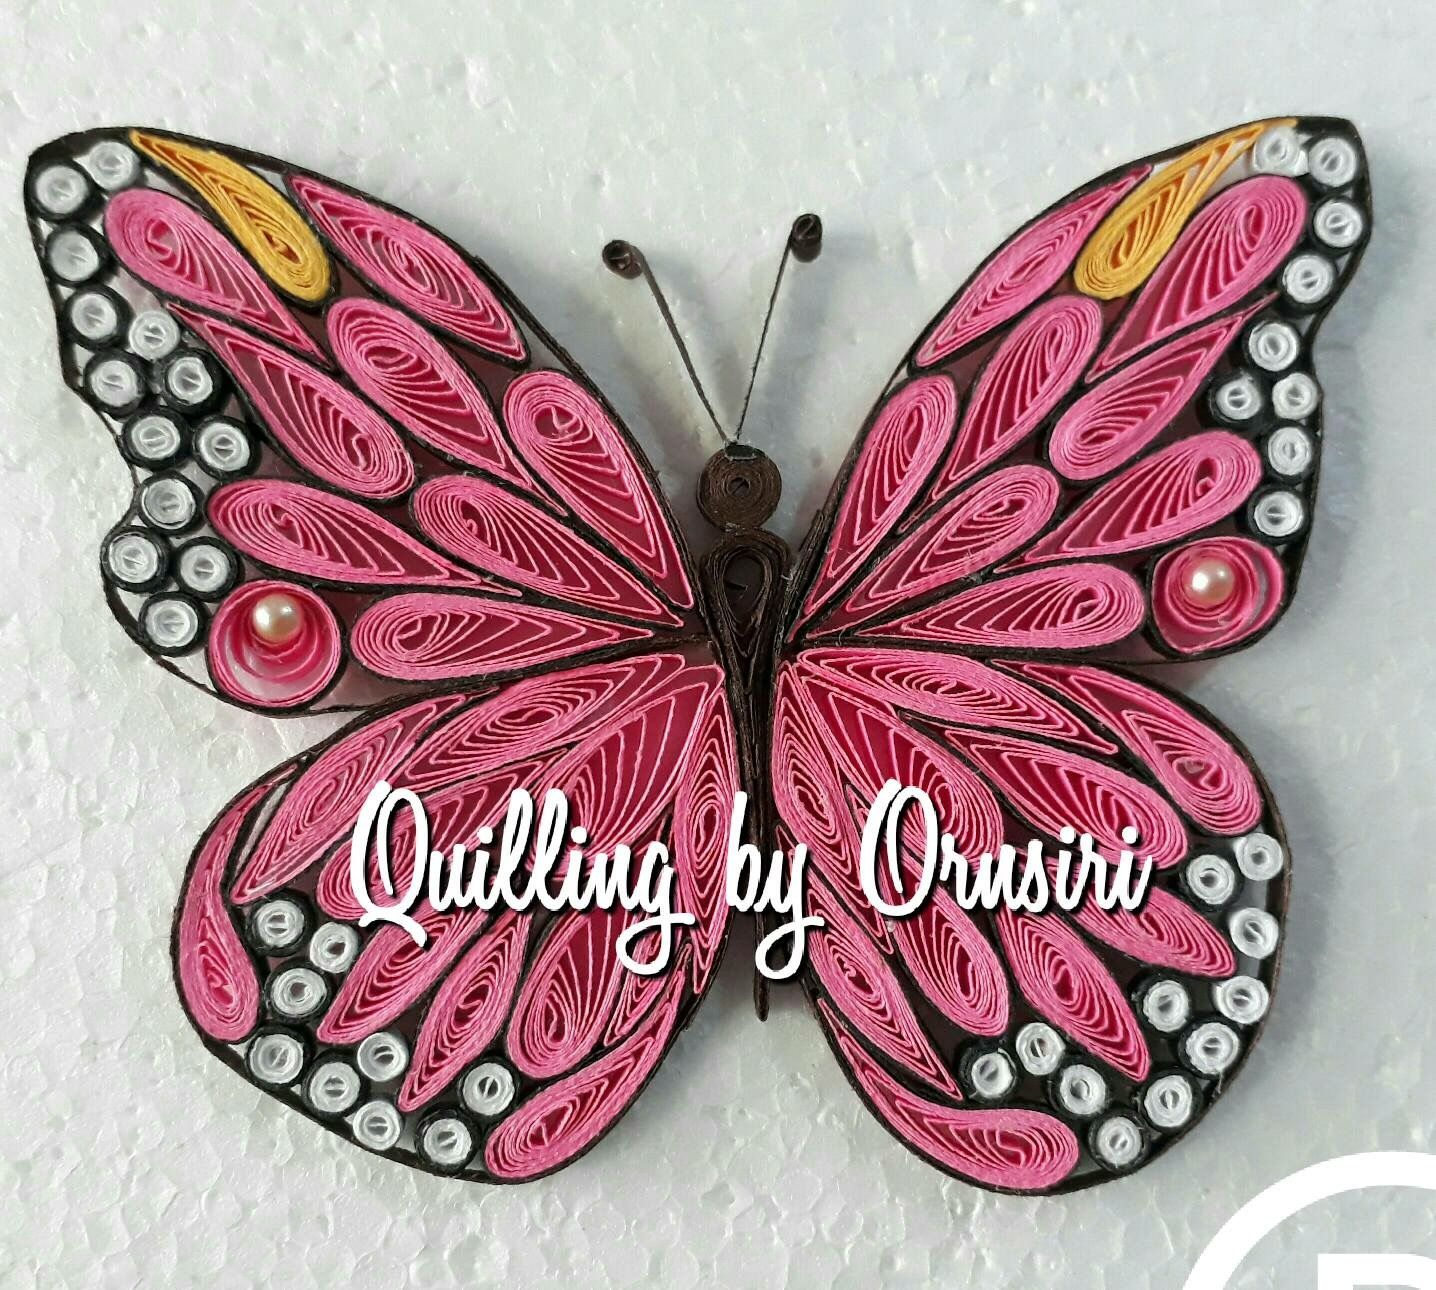 Pin by Chameeka on Paper quiling | Pinterest | Quilling, Paper ... for Quilling Butterfly Tutorial  585hul